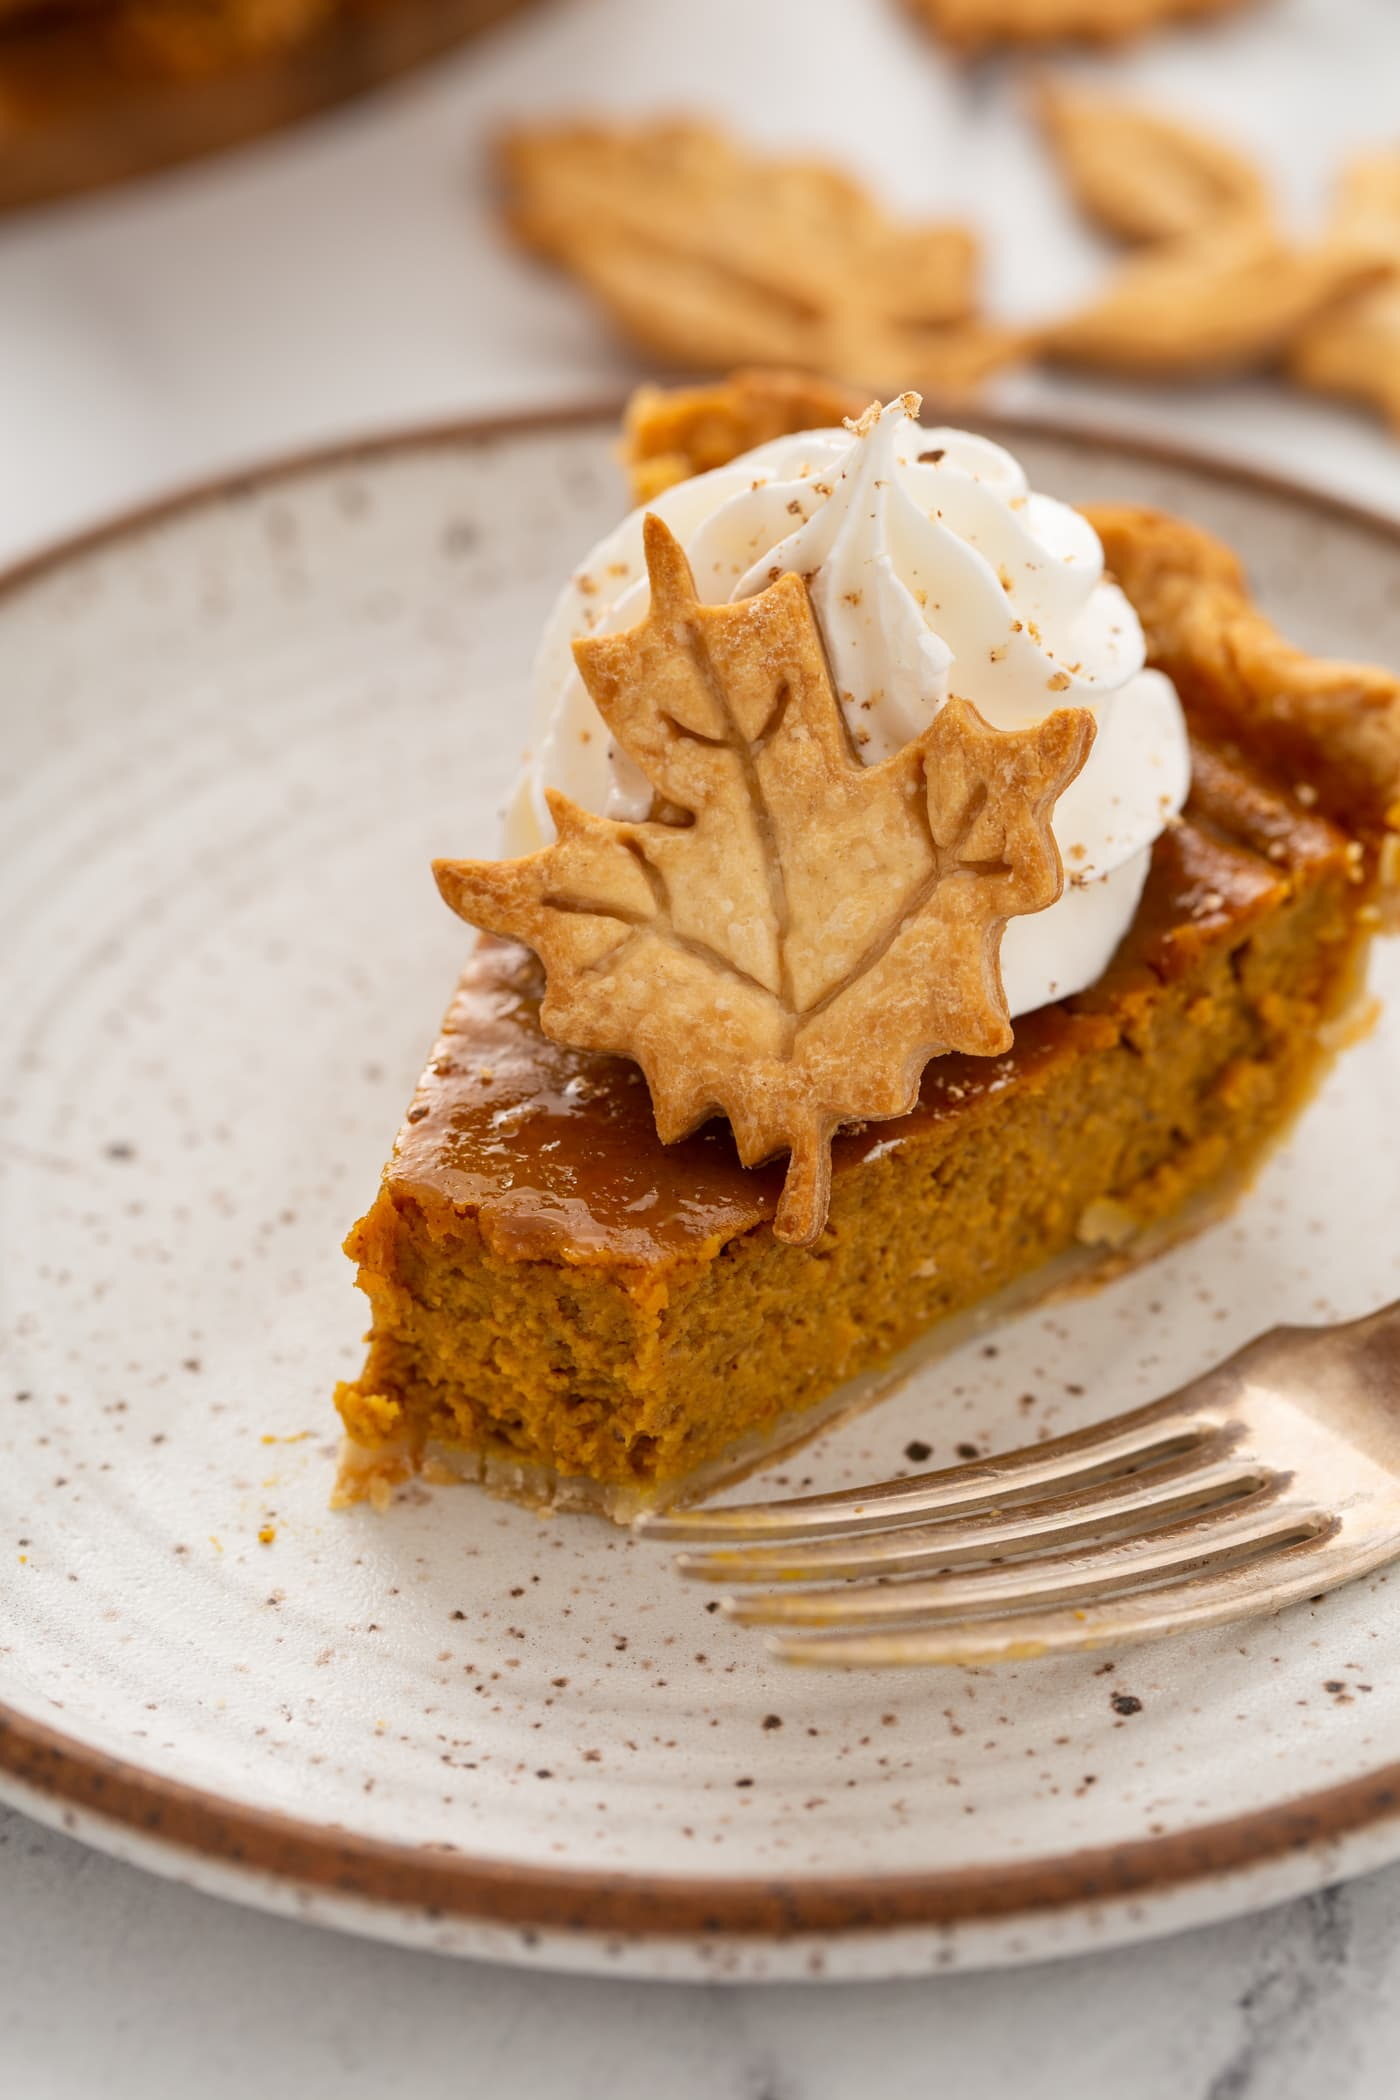 A photo of a slice of pumpking pie with a bite removed topped with piped whipped cream and a pie crust leaf.